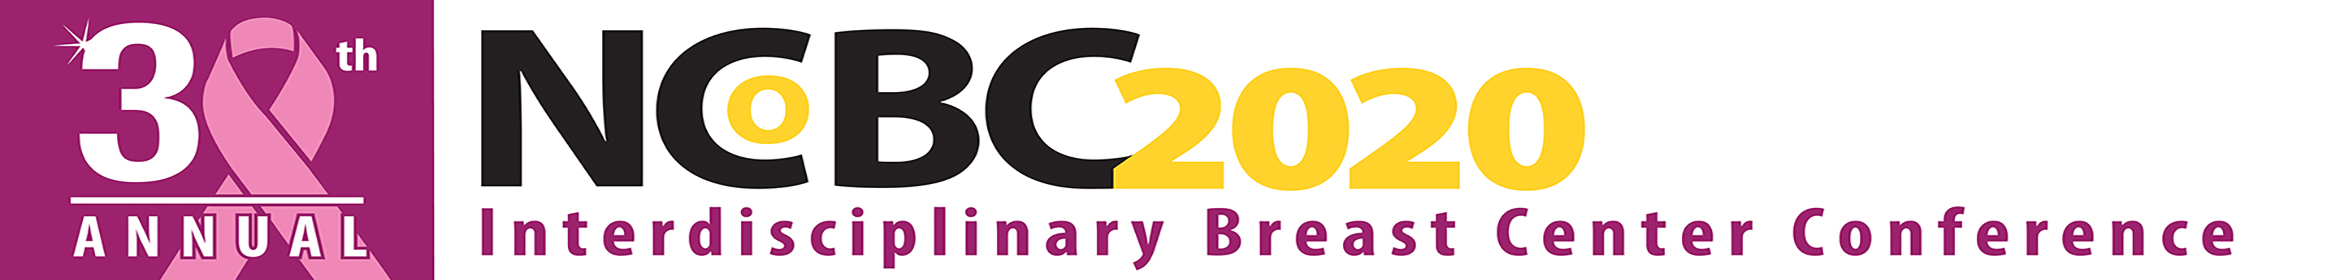 NCoBC 2020 Main banner